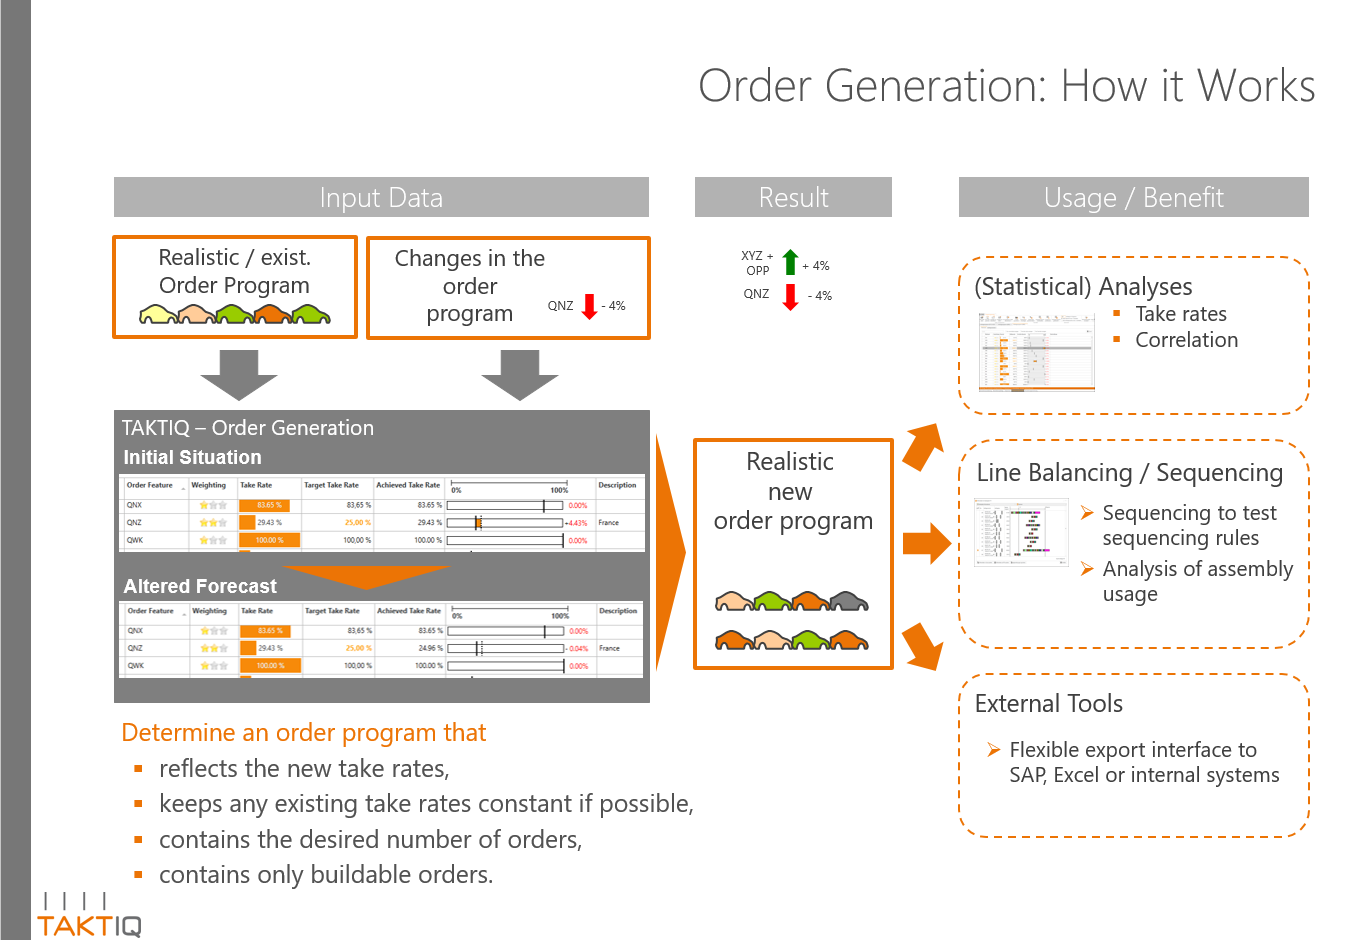 Order Generation: How it works